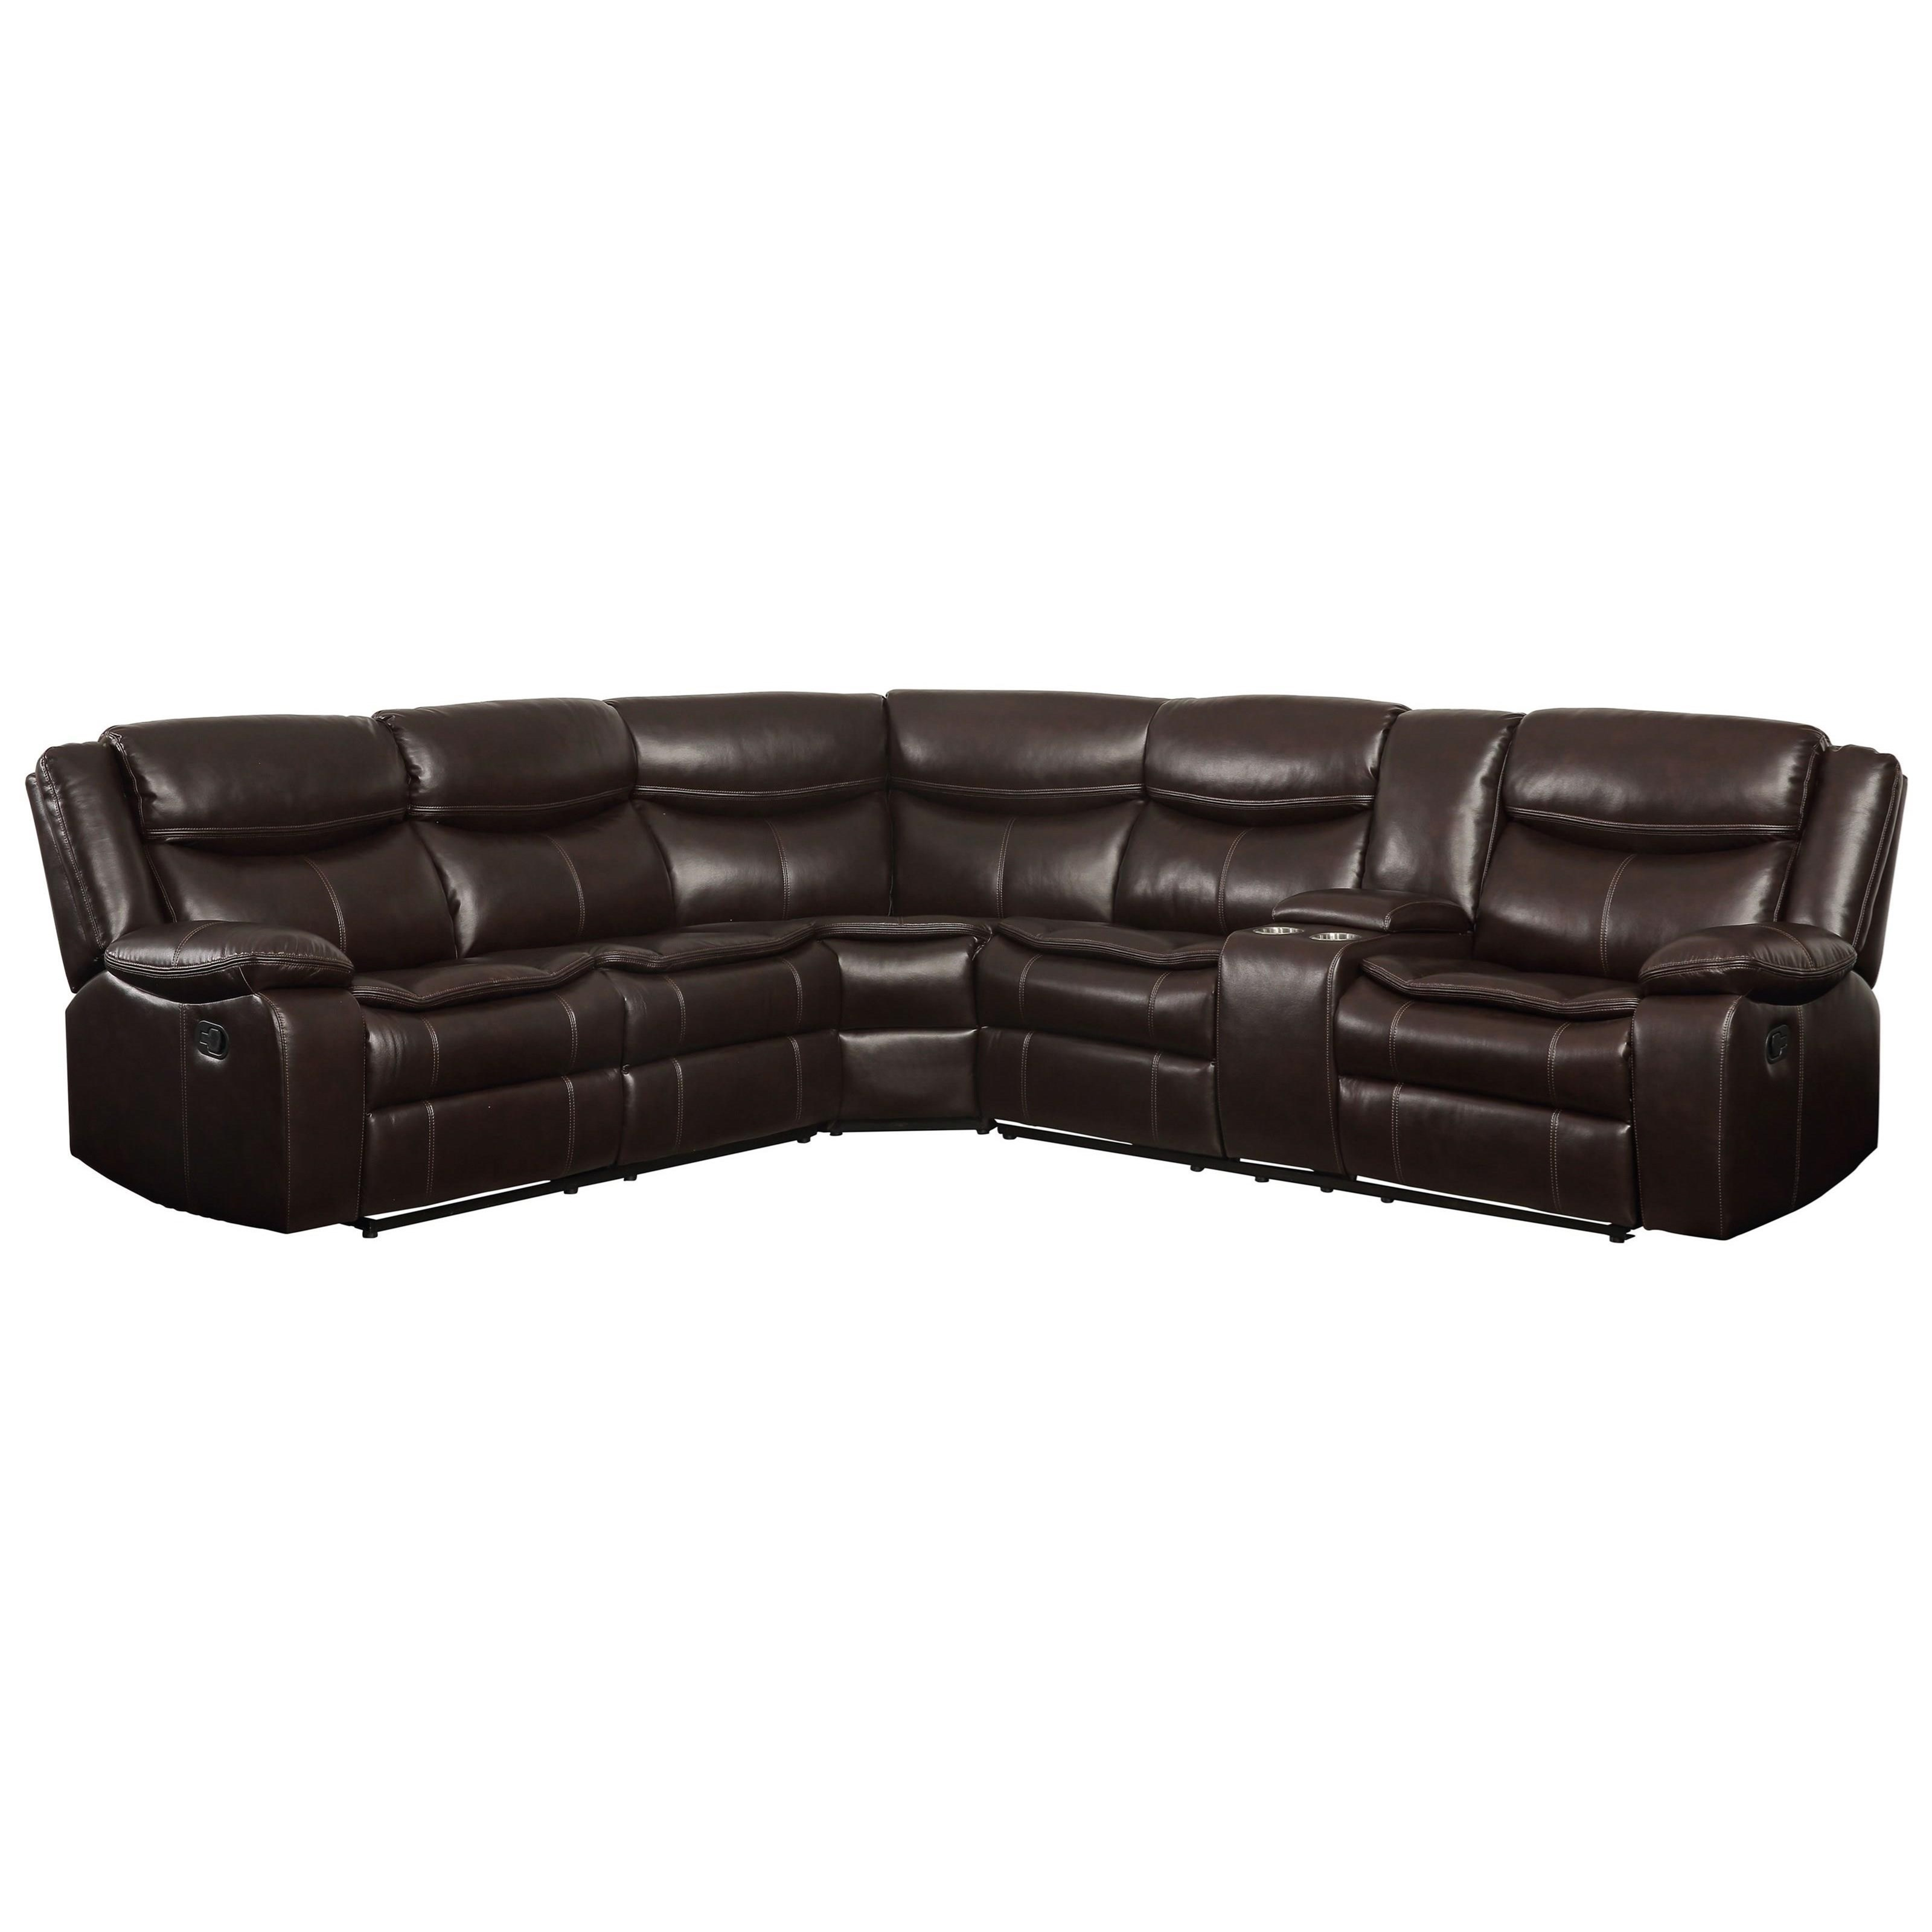 Tavin Sectional Sofa by Acme Furniture at Dream Home Interiors